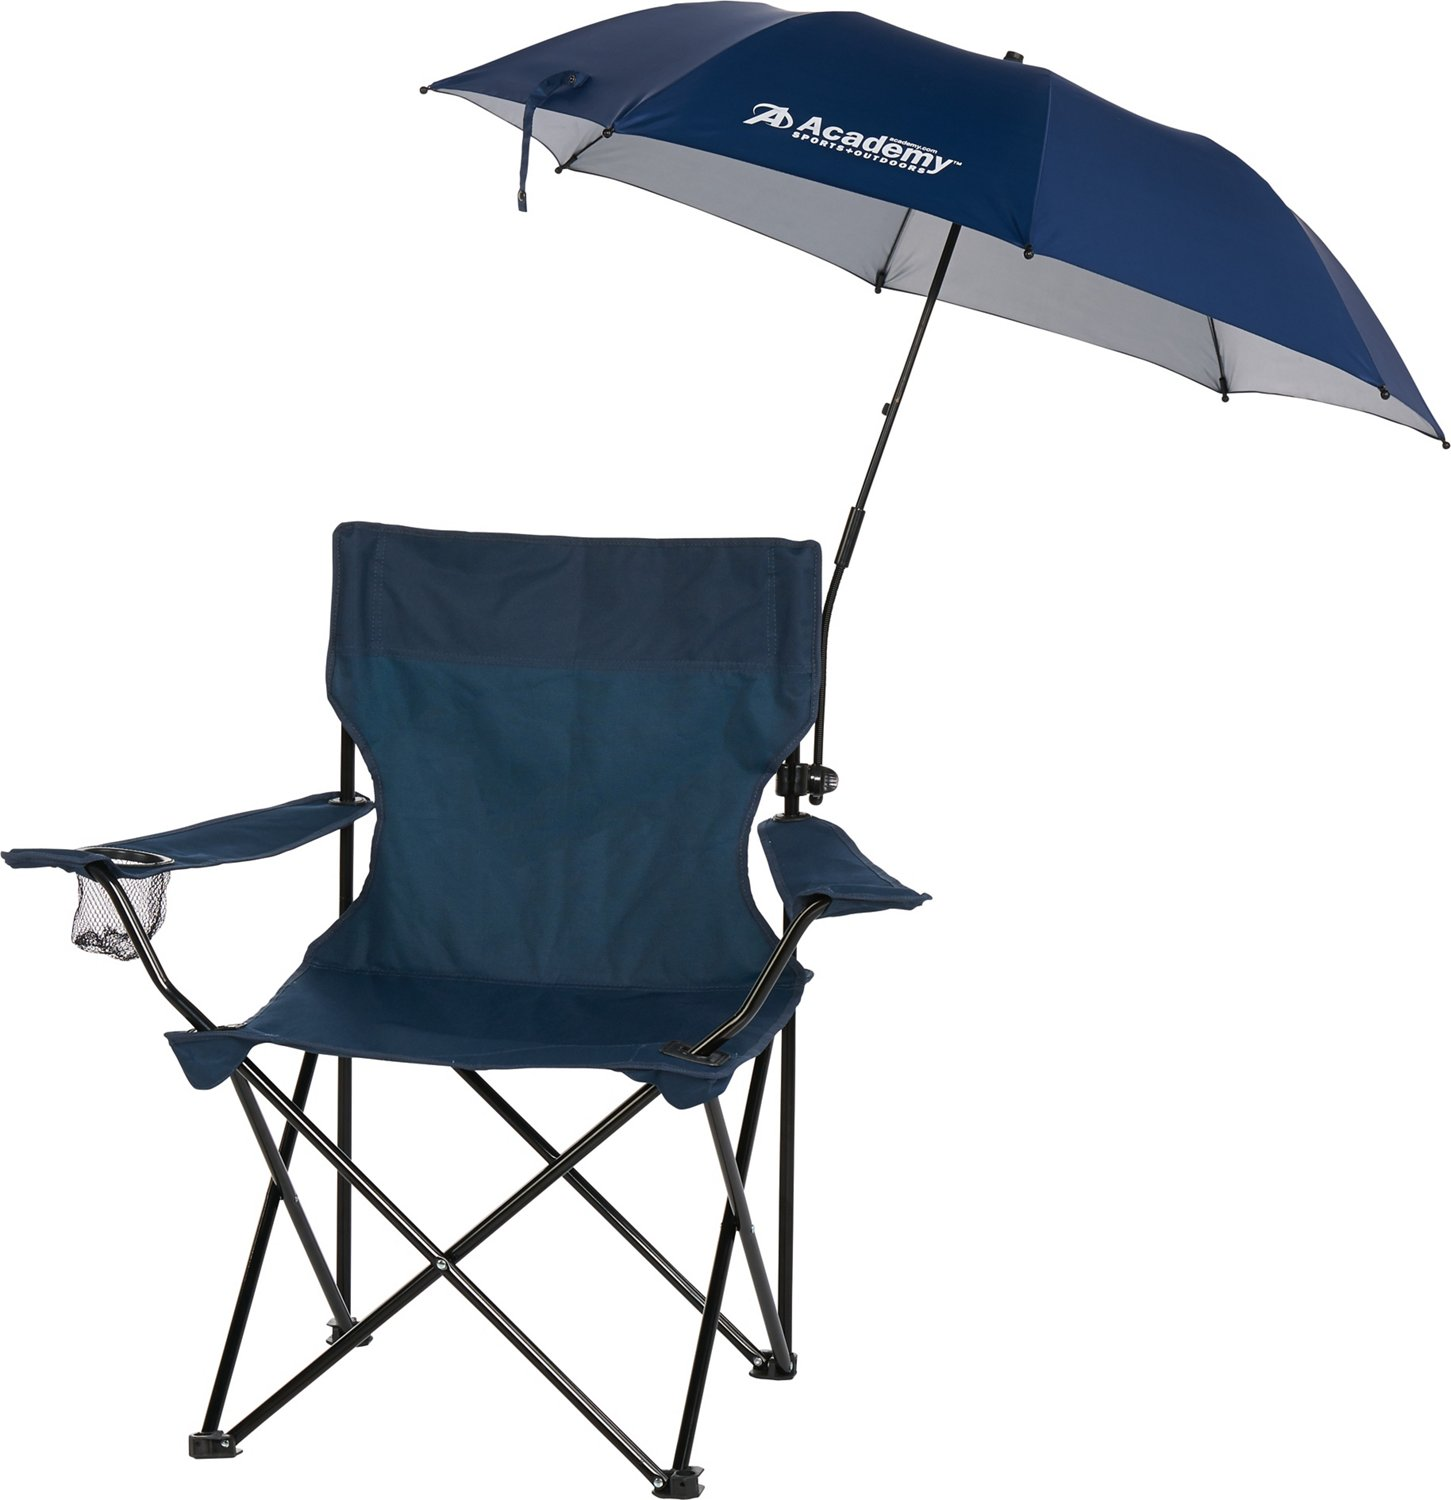 Chair With Umbrella Academy Sports Outdoors 3 4 Ft Clamp On Umbrella